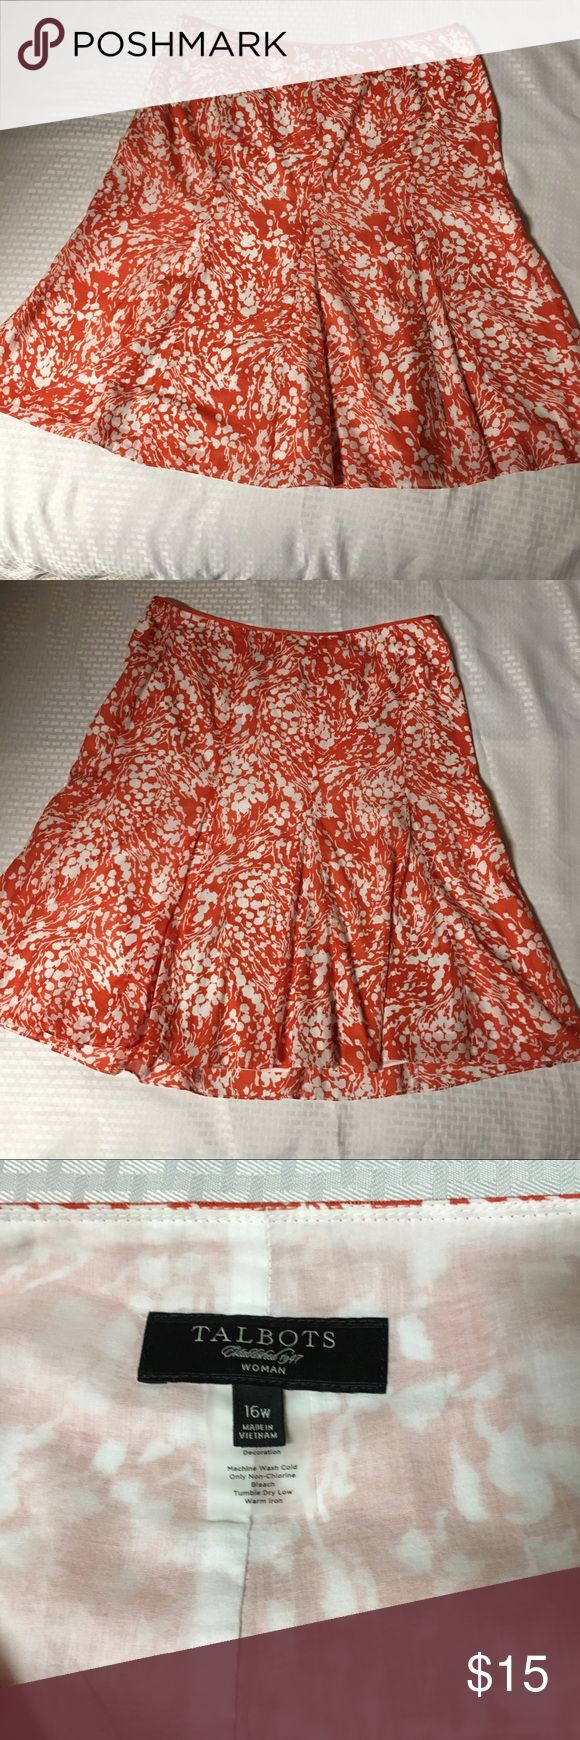 Talbots Women's Skirt Size 16 W Orange and White Size 16 W Orange and white colored Linen and Cotton material  Floral pattern Very good condition Talbots Skirts